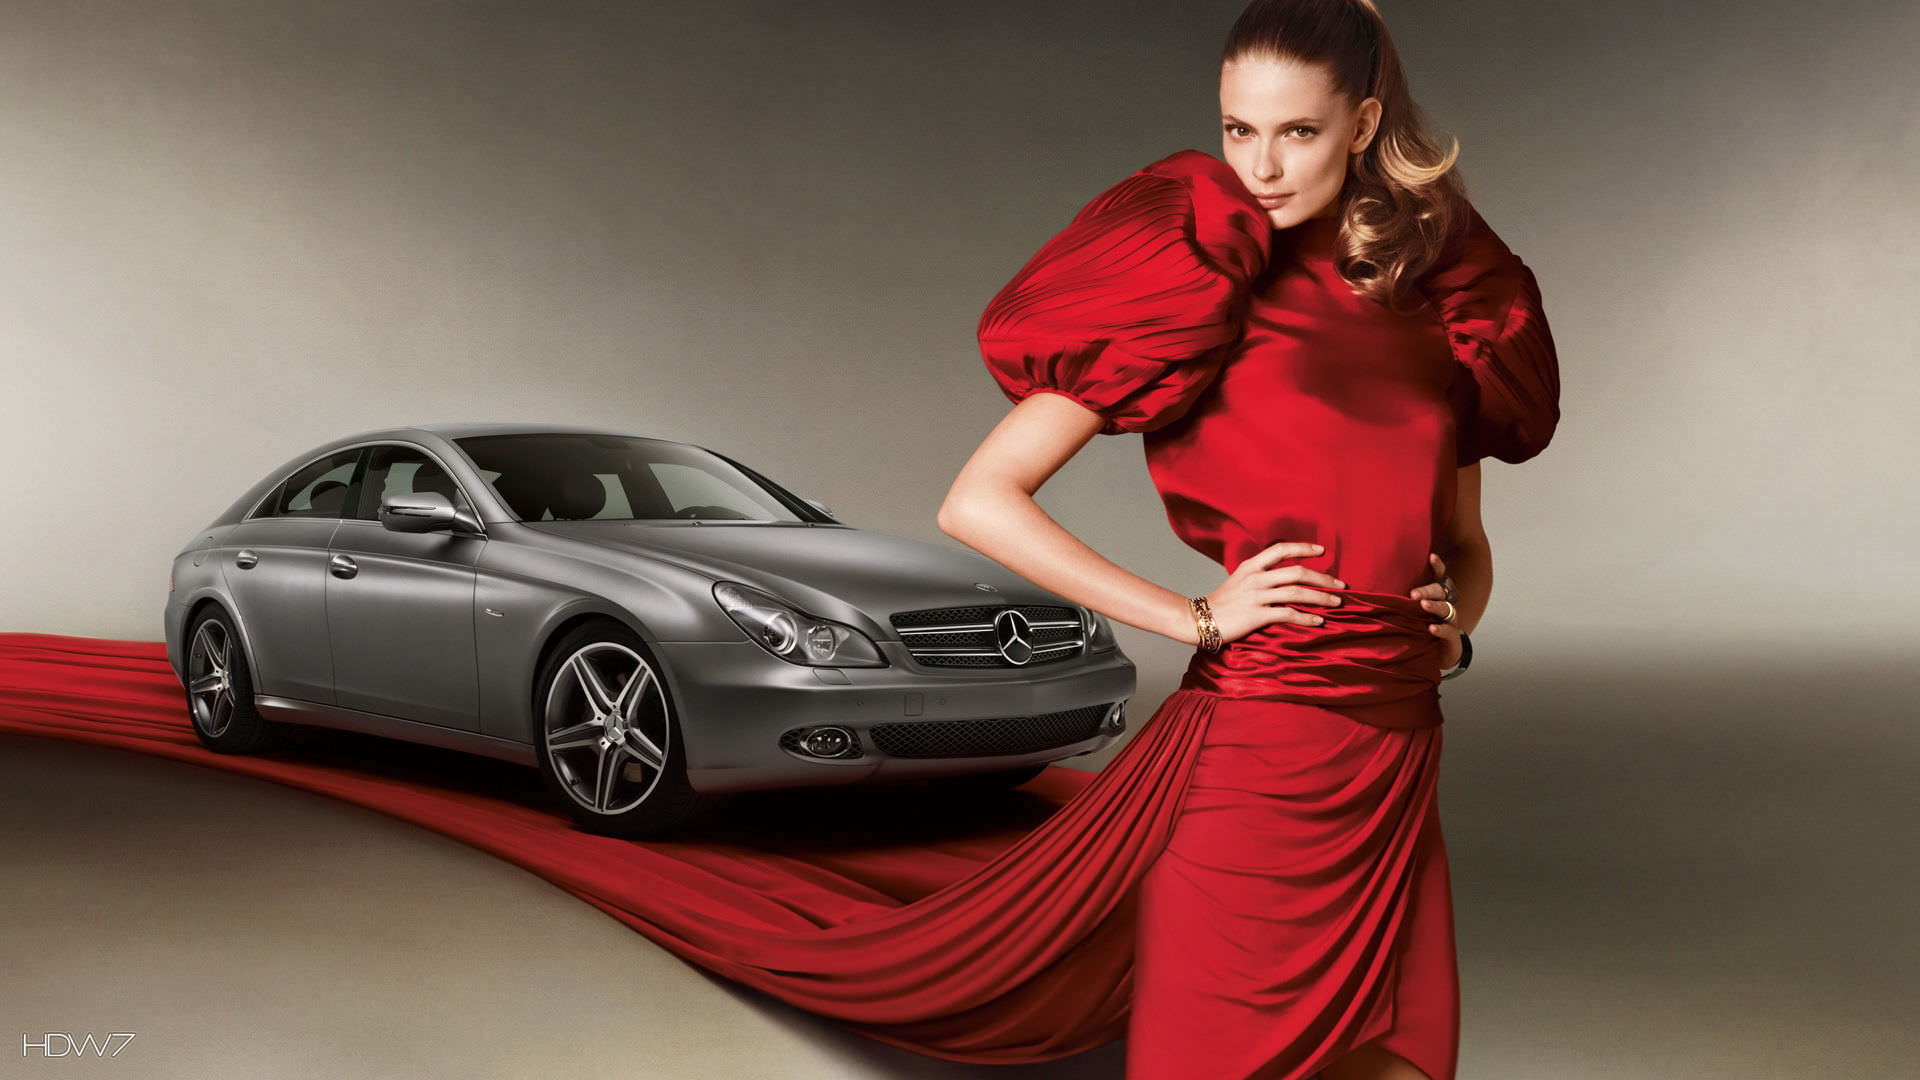 Mercedes Benz glamour: Photo Gallery